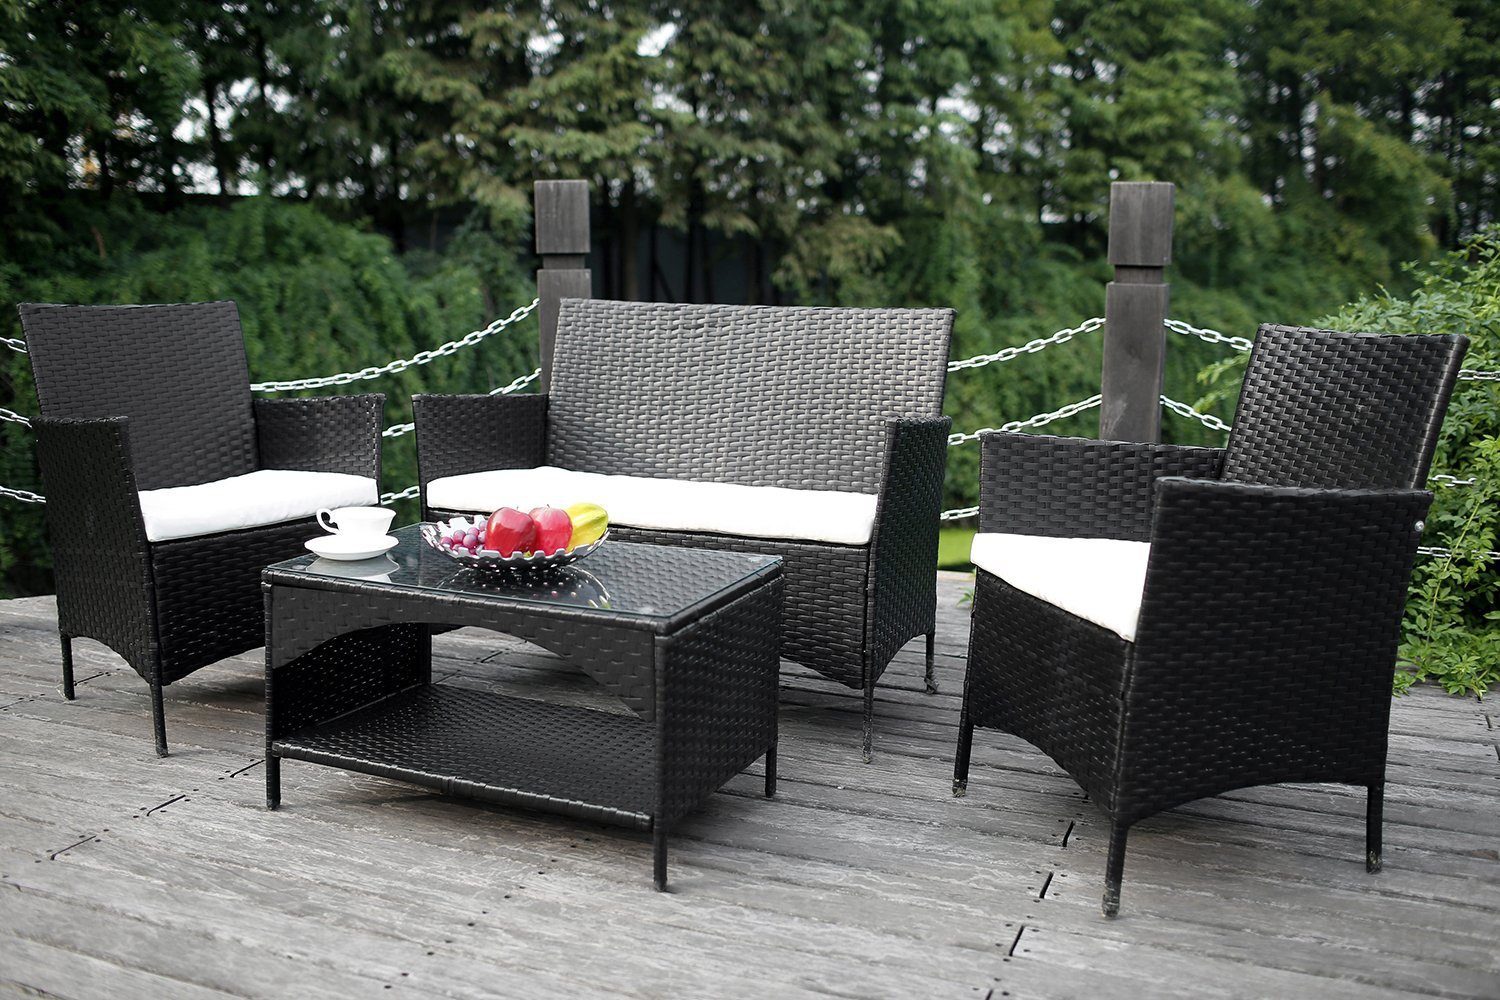 watch patio viva seating home dining wicker set rattan review outdoor furniture